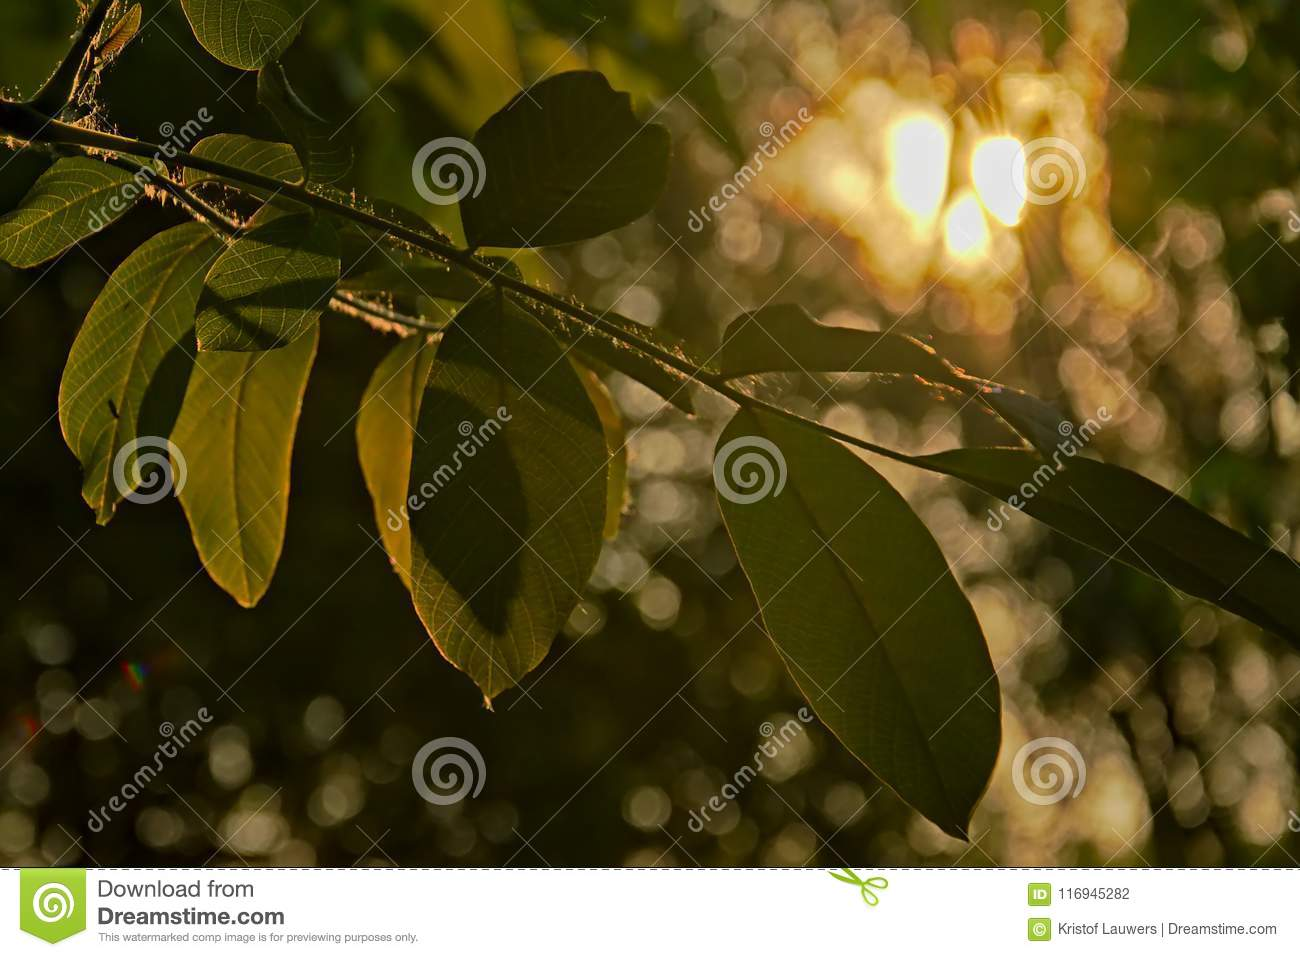 Black Walnut Tree Leafs In Evening Light Stock Photo - Image